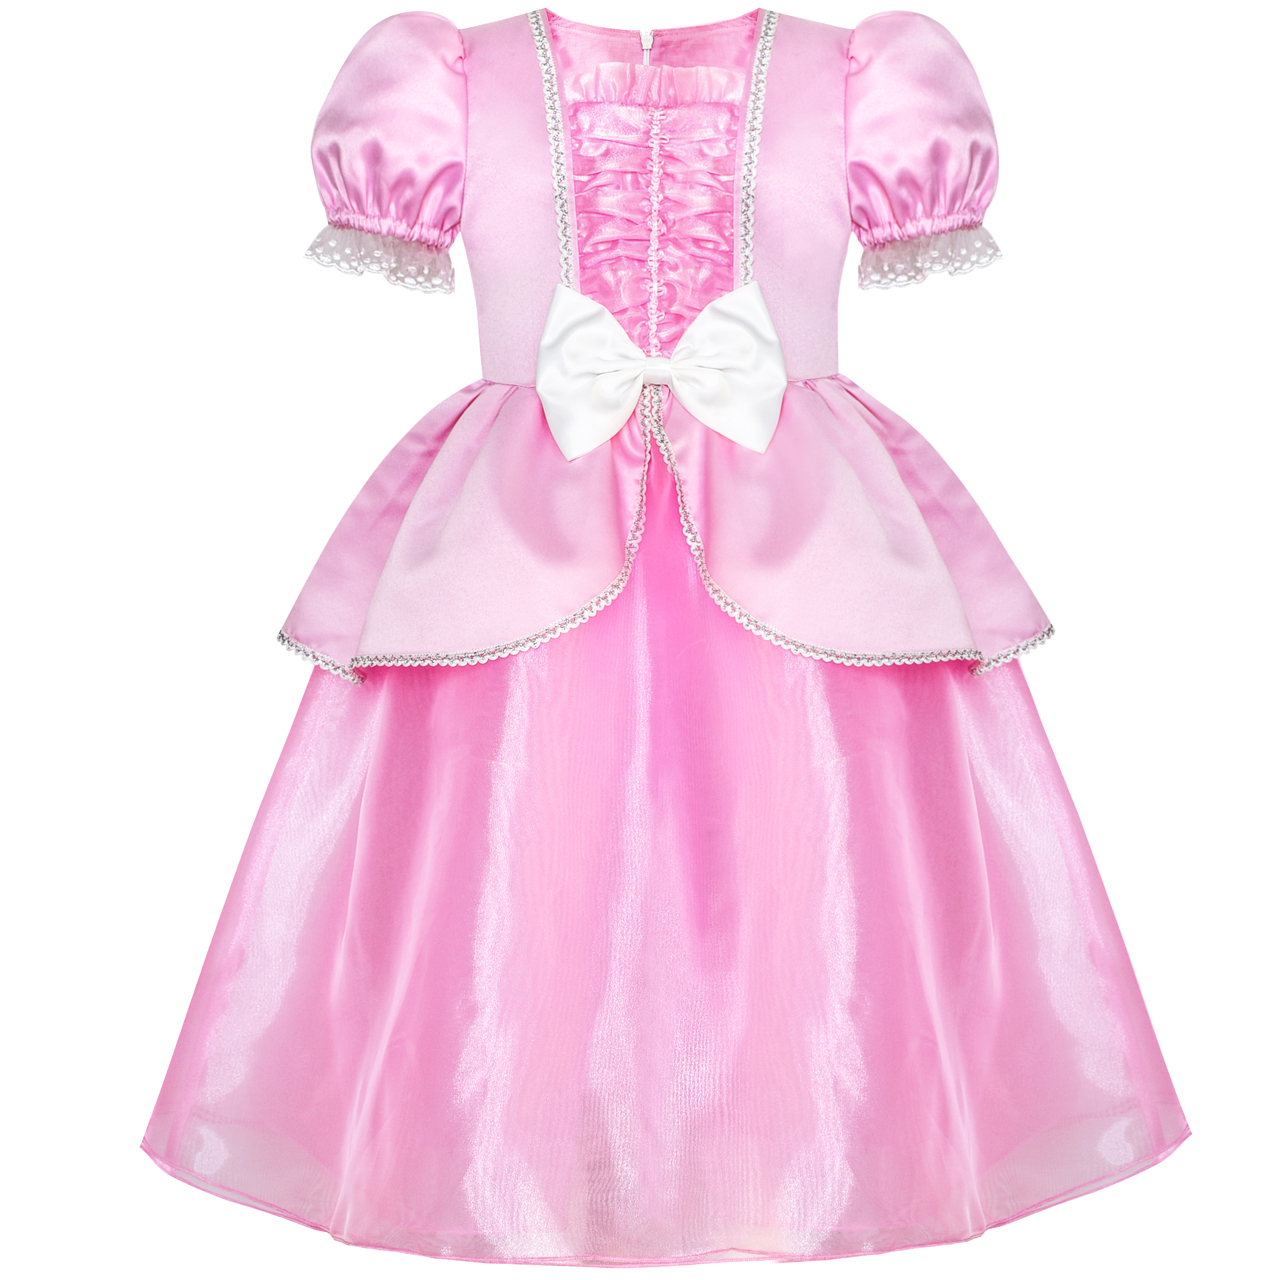 Sunny Fashion Girls Dress Pink Princess Cosplay Costume Dress Up Party 2018 Summer Wedding Dresses Girl Clothes Size 6-12 sunny fashion girls dress princess worsted winter christmas hat lace red 2018 summer wedding party dresses clothes size 4 10